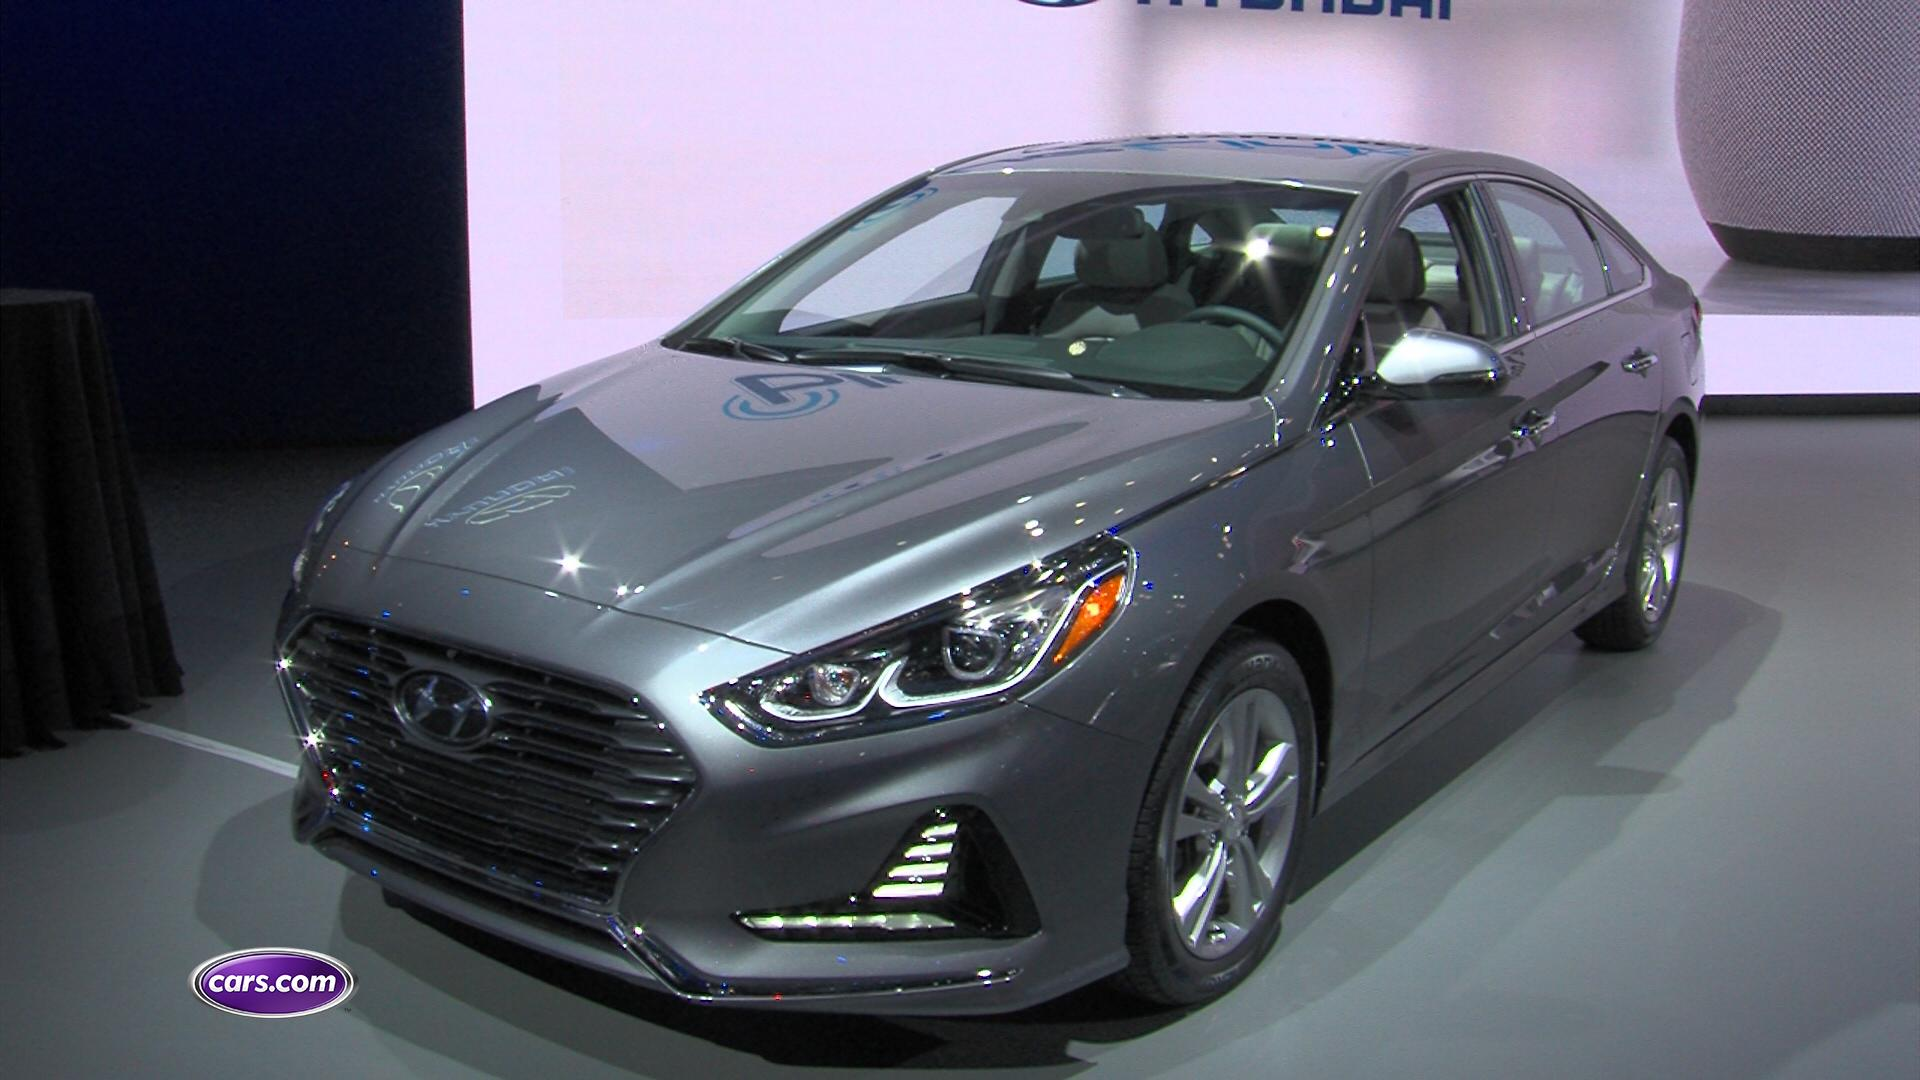 Hyundai - Latest models: Pricing, MPG, and Ratings | Cars.com